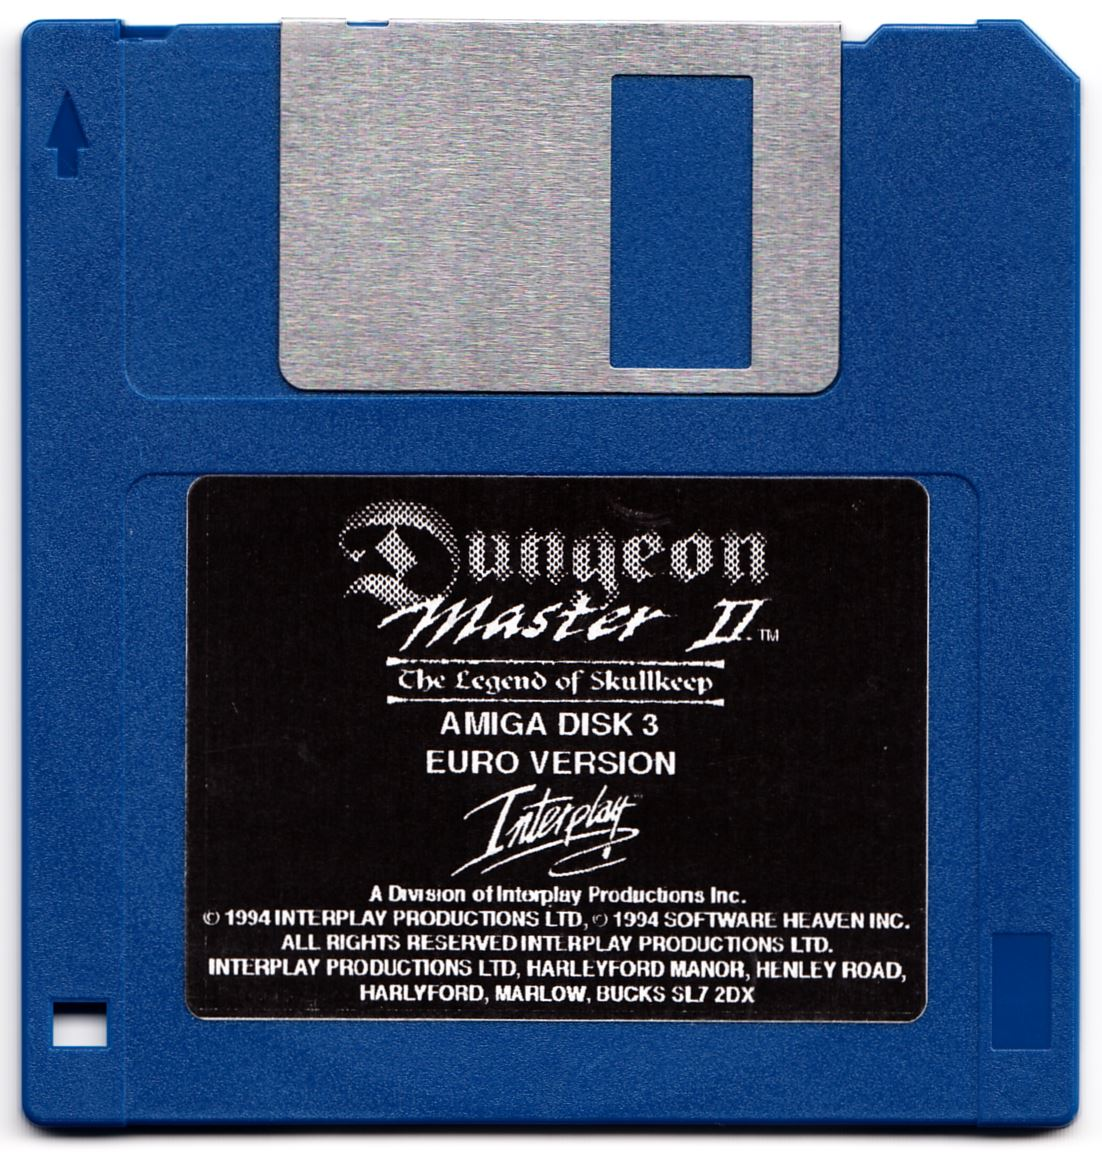 Game - Dungeon Master II - UK - Amiga Alternate - Disk 3 - Front - Scan